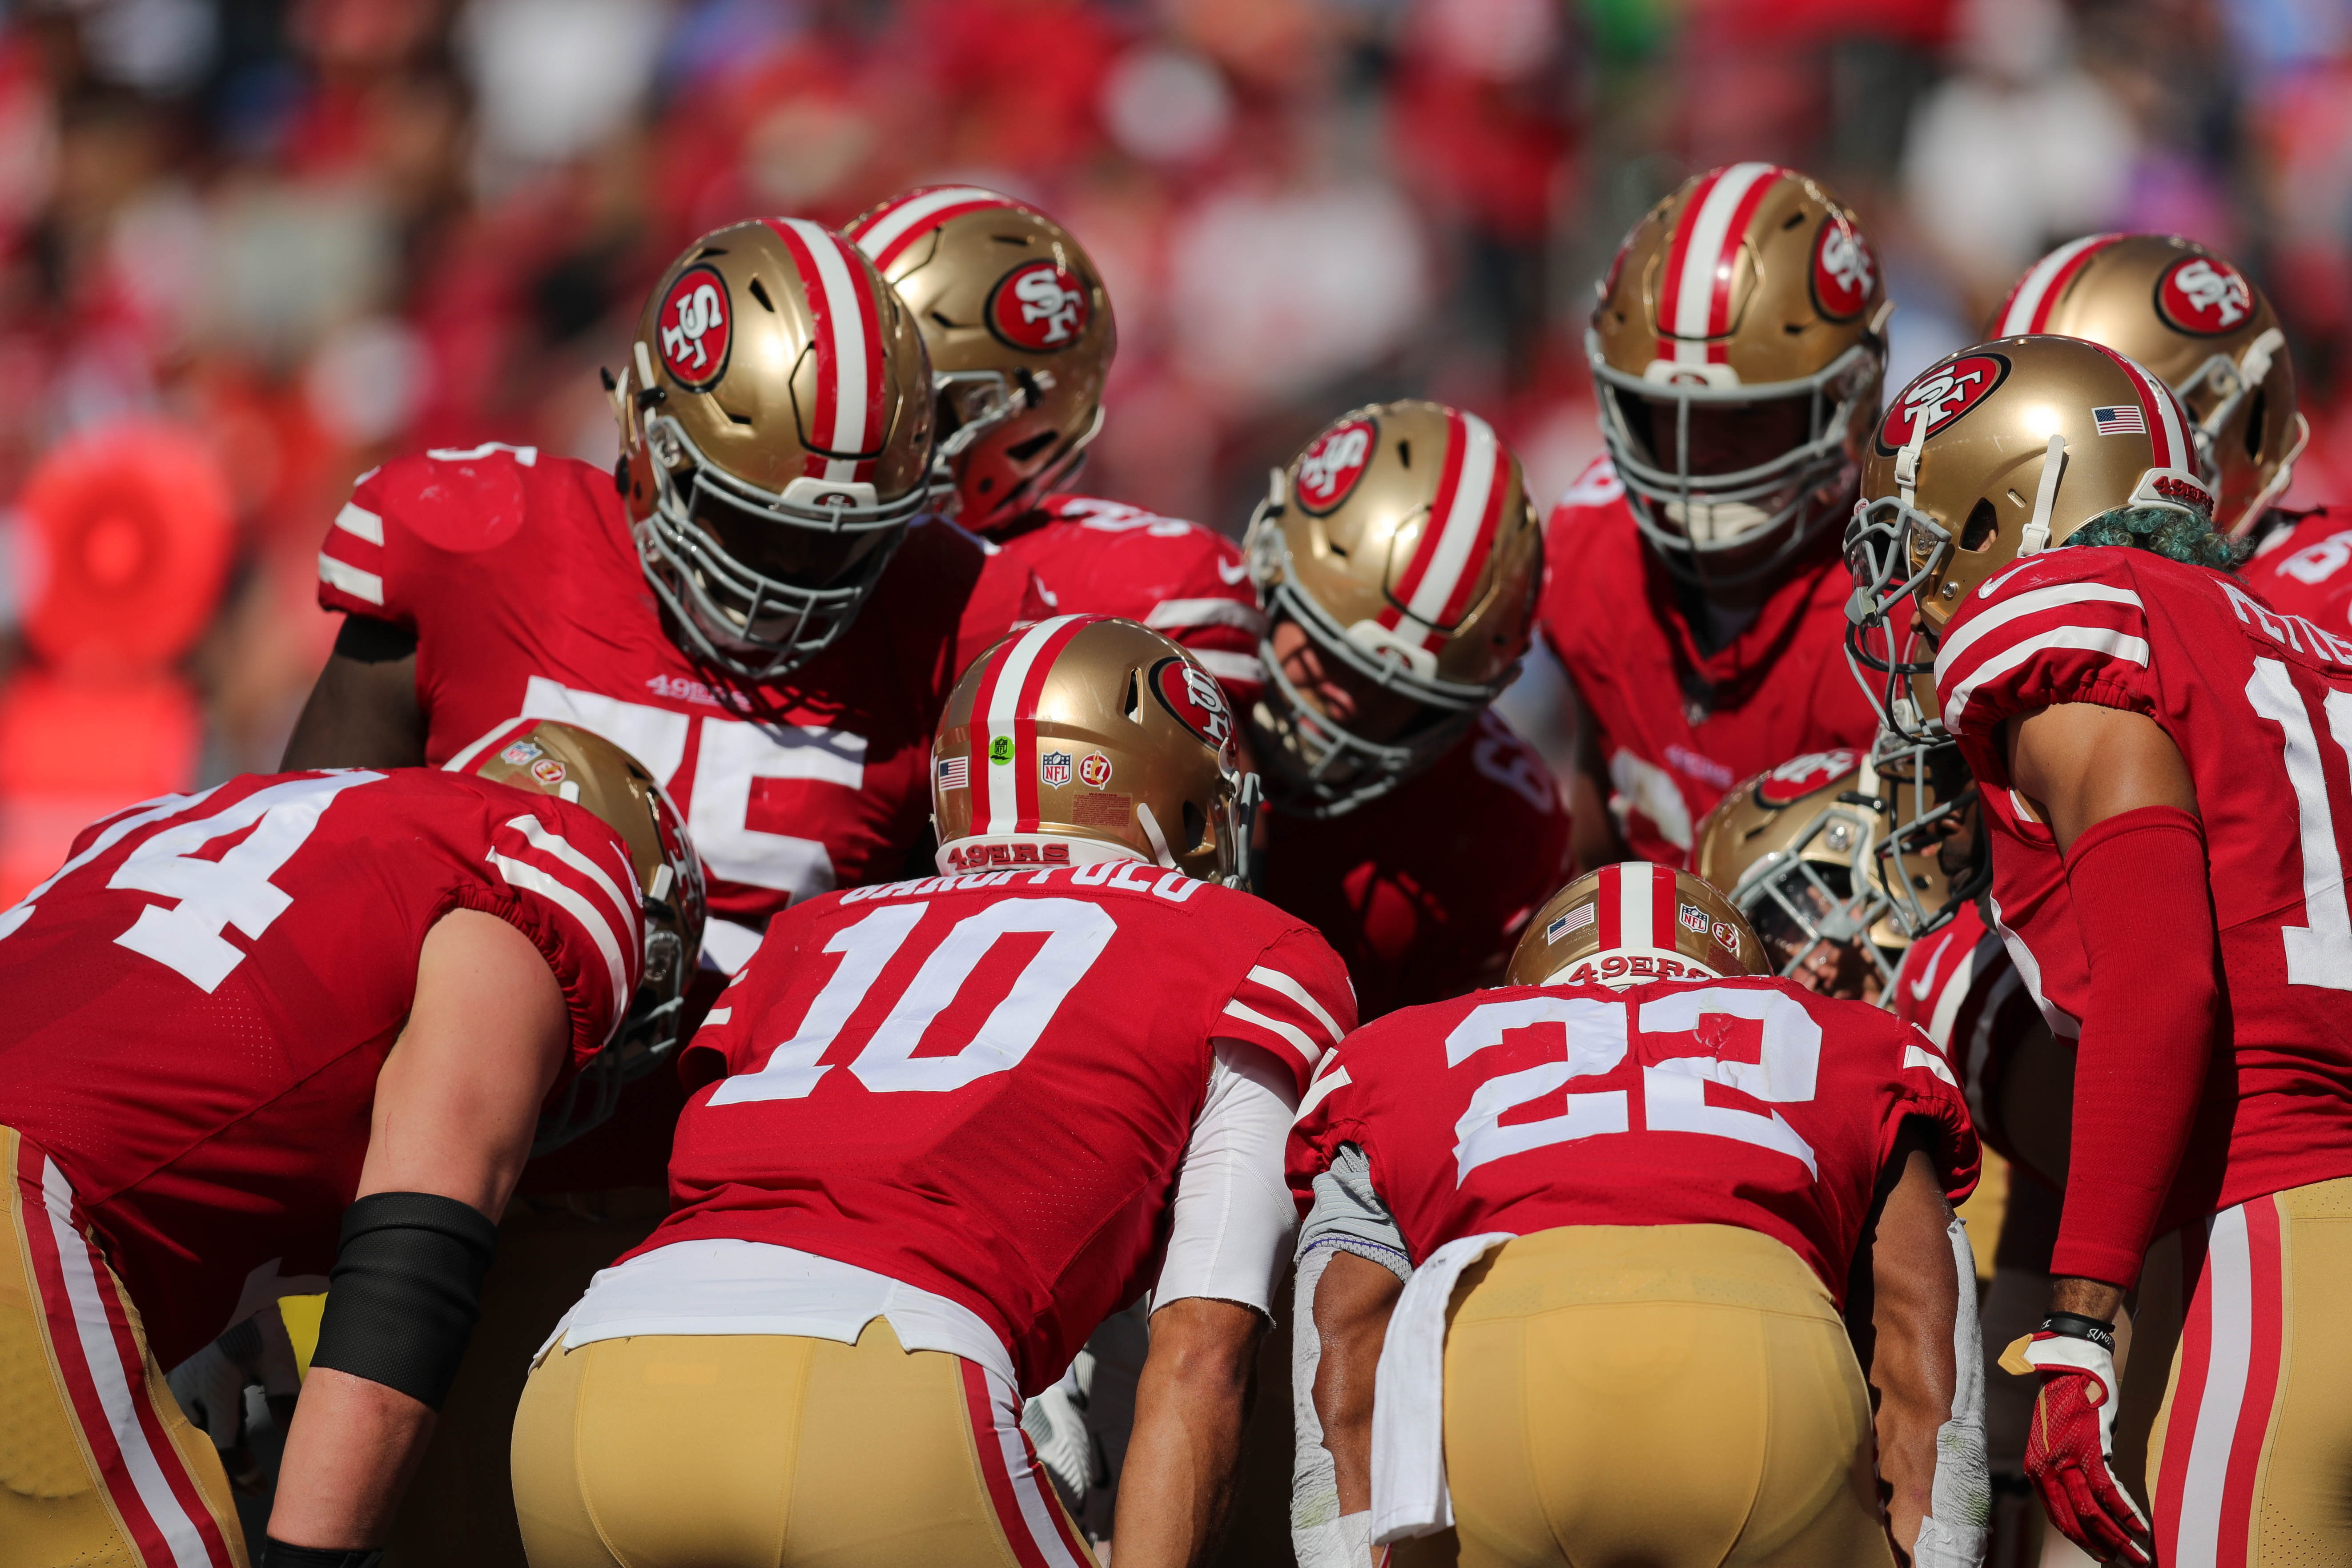 c1b137b04c8 Grading the 49ers offensive players halfway through the 2018 season - Niners  Nation